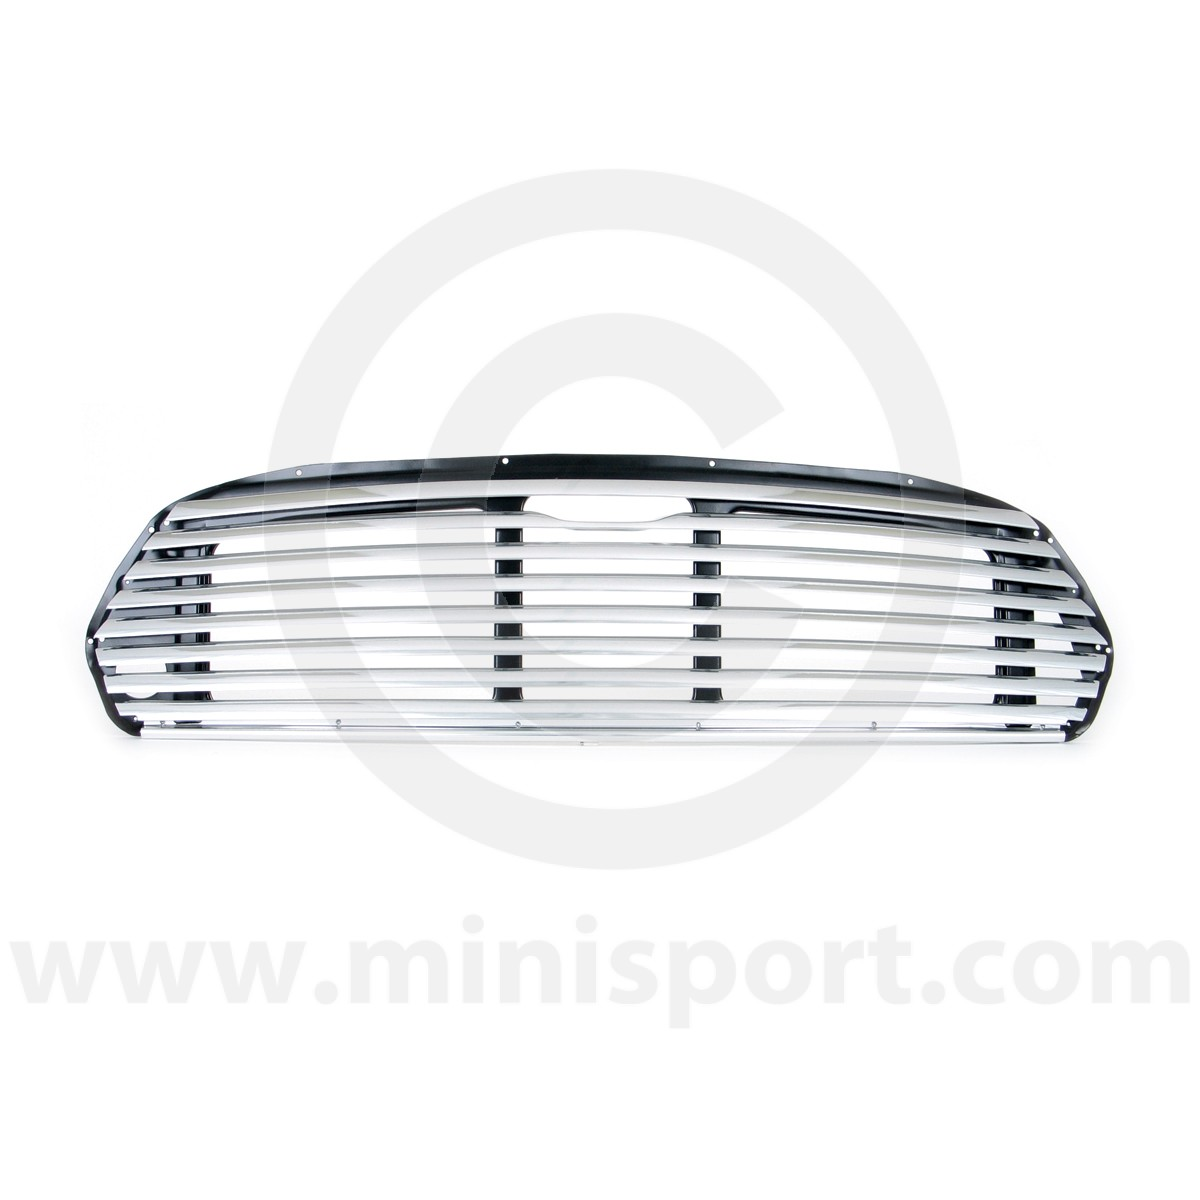 Dhb10151mmm Cooper 8 Bar Grille Mini 1275 Gt With Alternator And Rocker Type Switches Dhb10151 External Release Ala6668